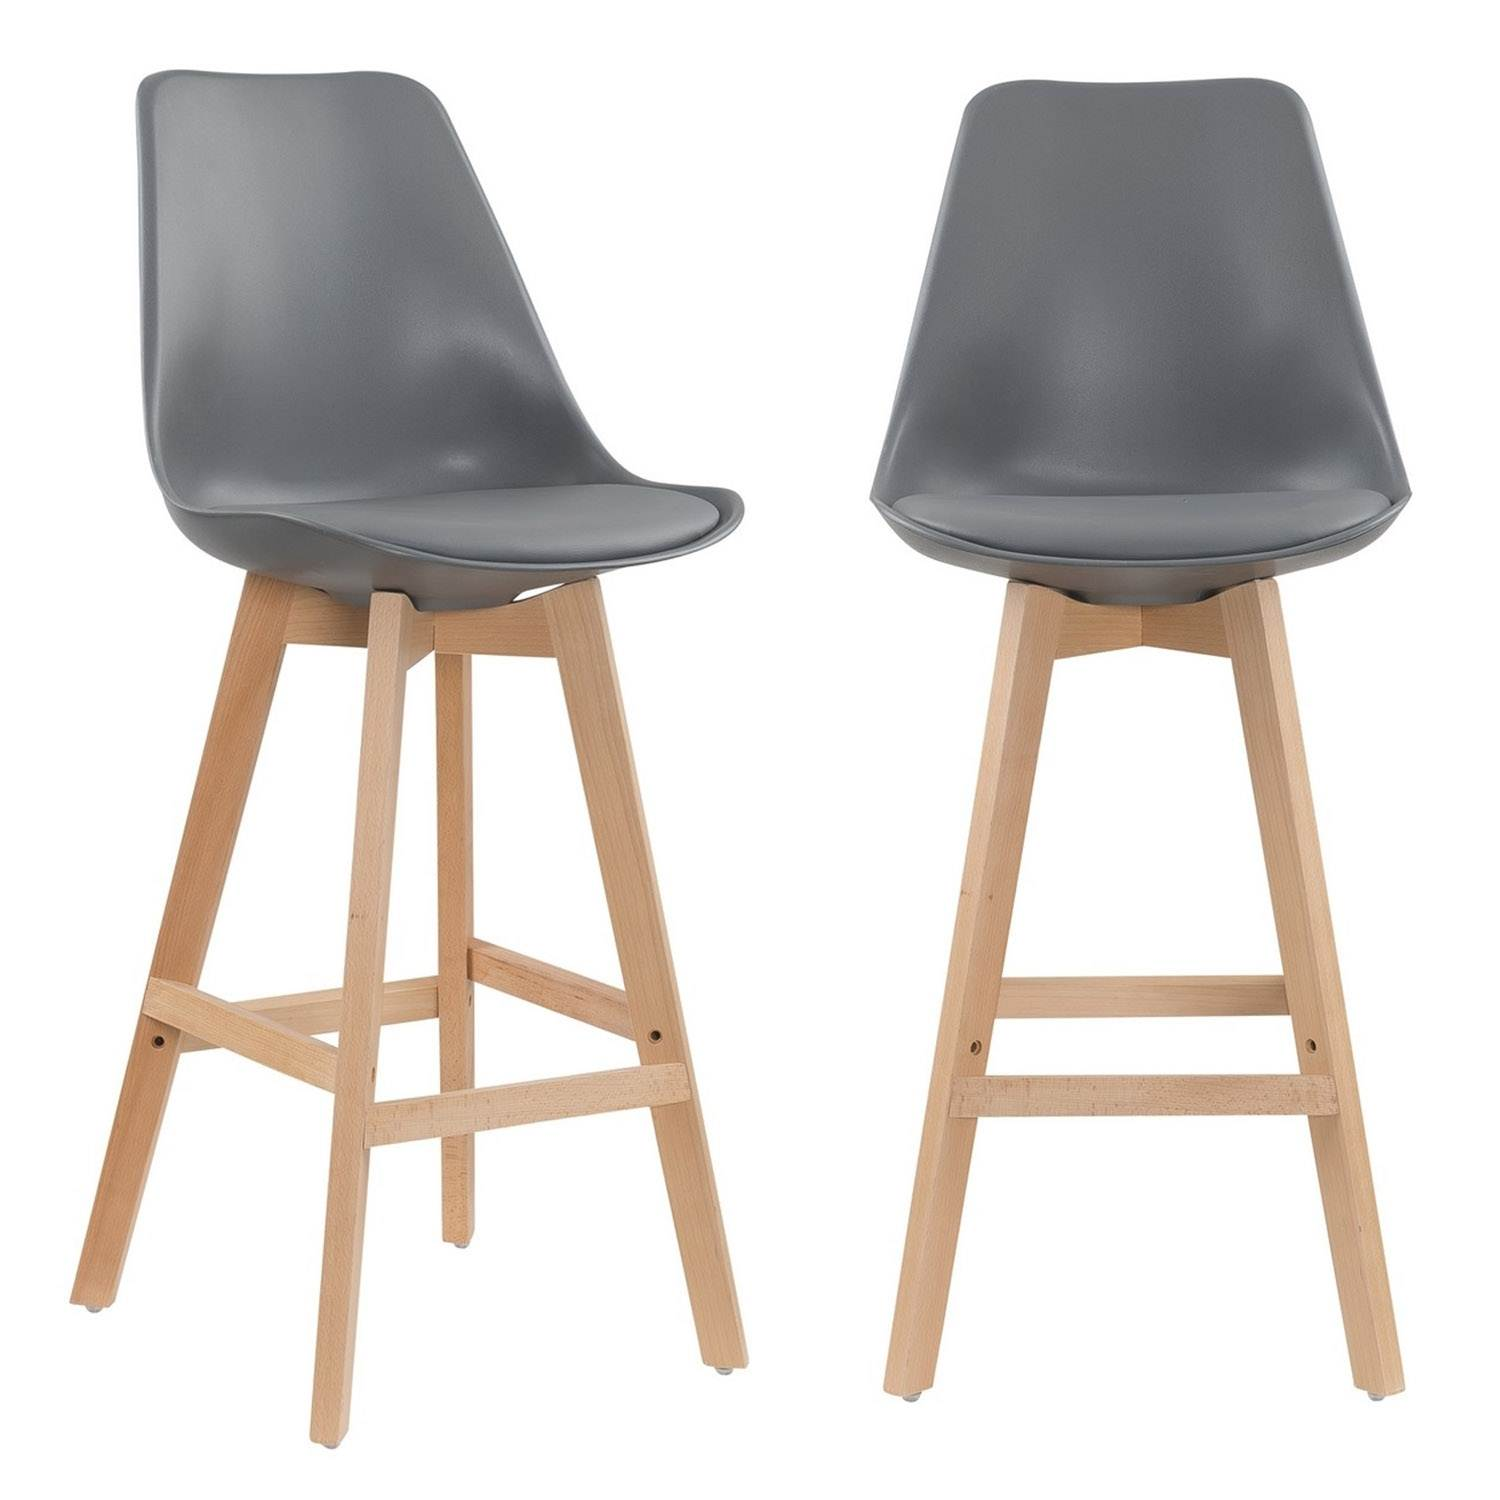 deco in paris 8 lot de 2 tabourets de bar scandinave gris gala tabouret gala gris. Black Bedroom Furniture Sets. Home Design Ideas